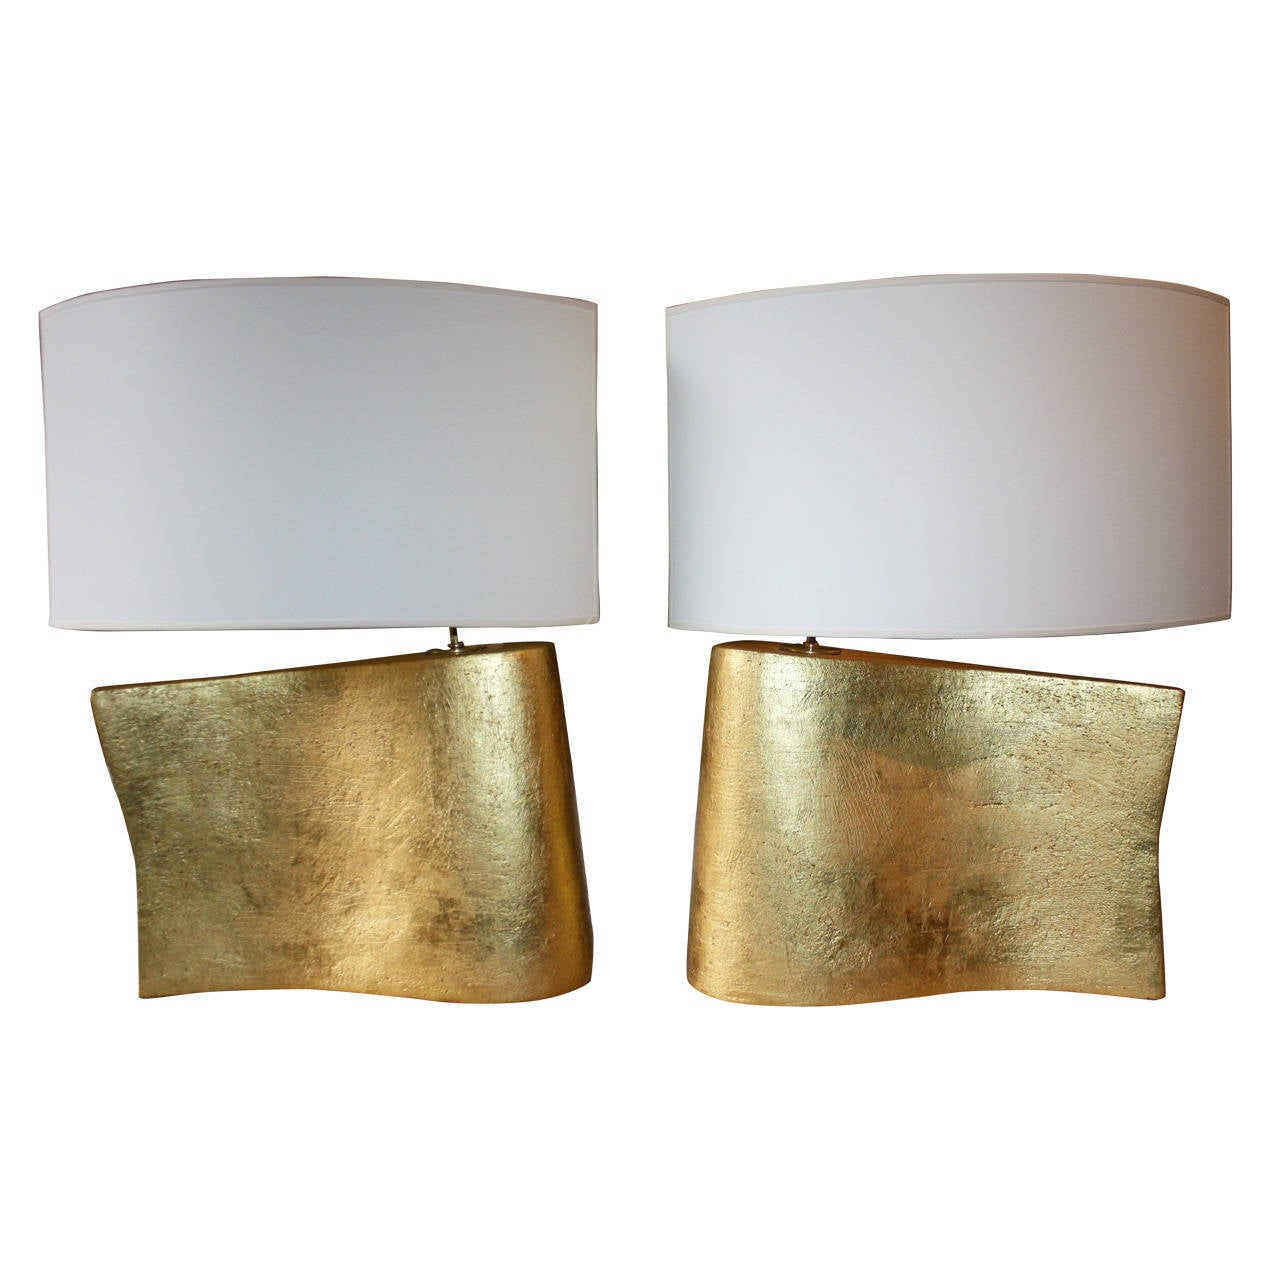 Pair of Hand-Coiled and Gilded Wave Lamps by Andrea Koeppel For Sale